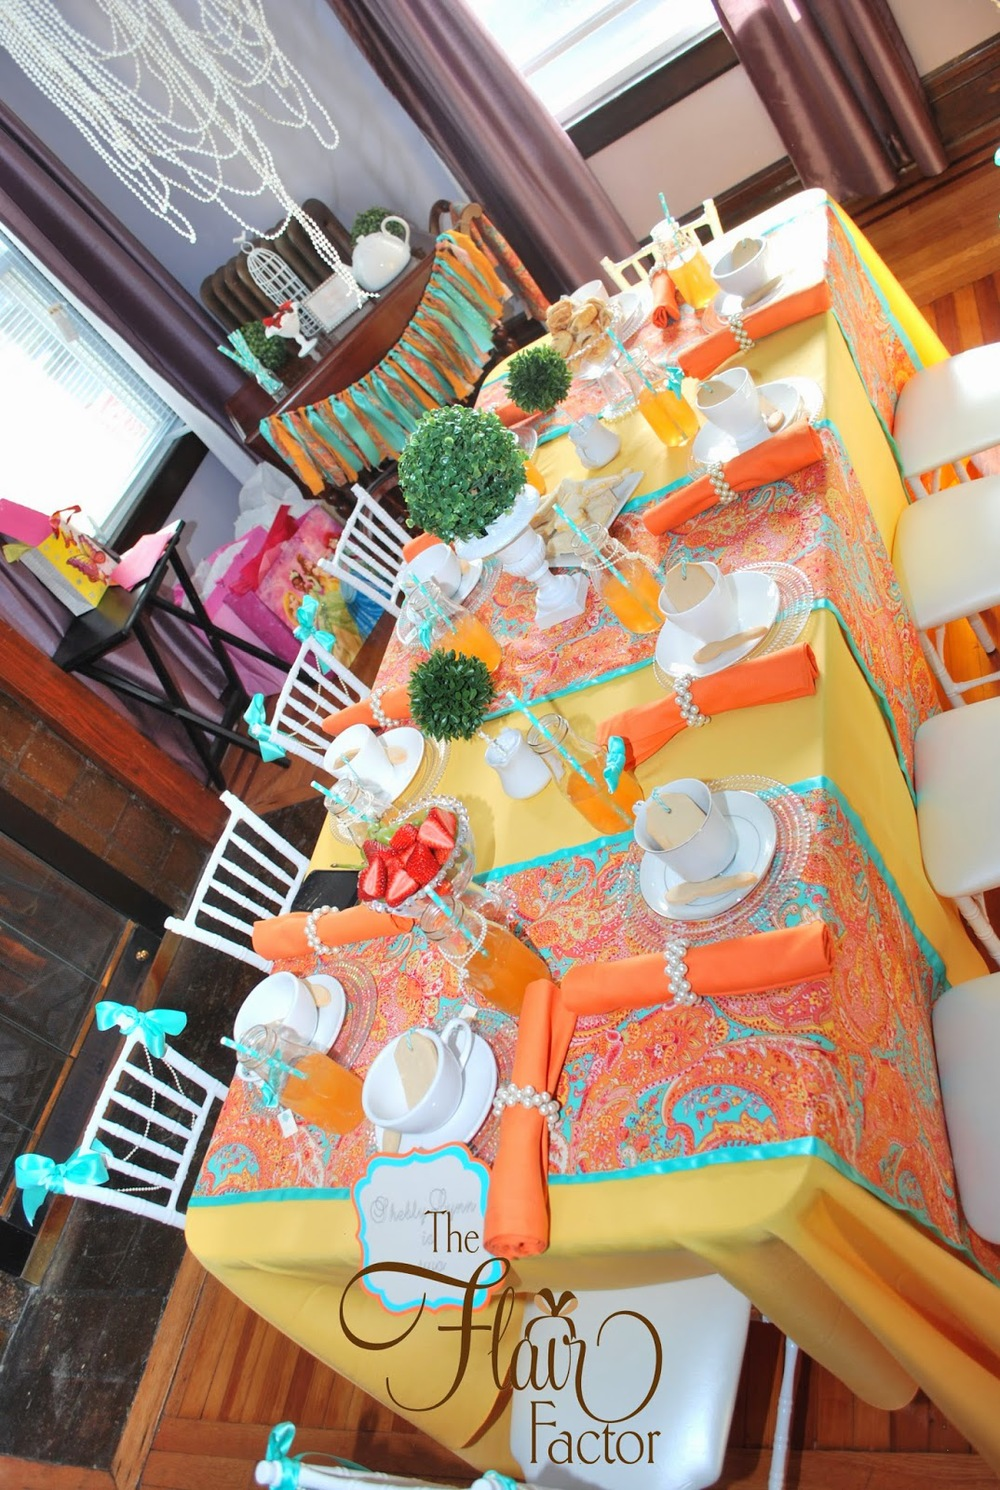 Now this is a tablescape!